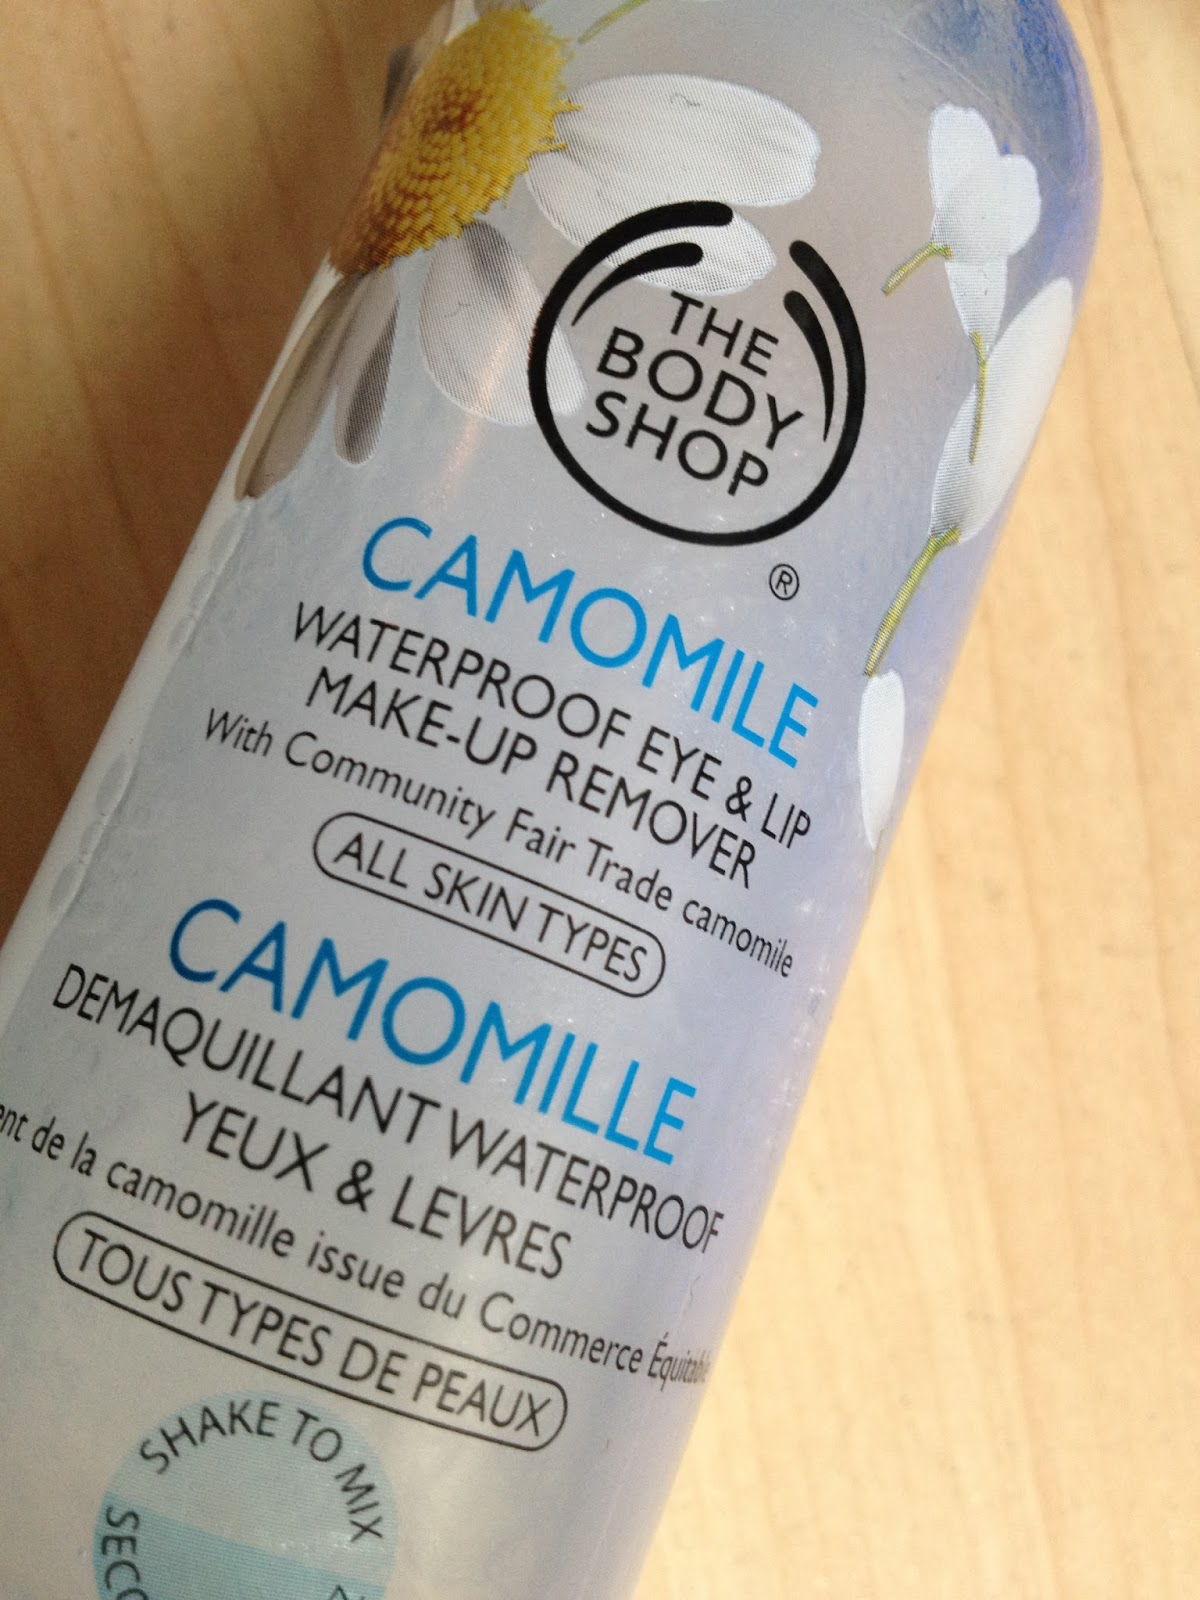 5 Minute Review Friday - The Body Shop Camomile Waterproof Eye and Lip Make Up Remover